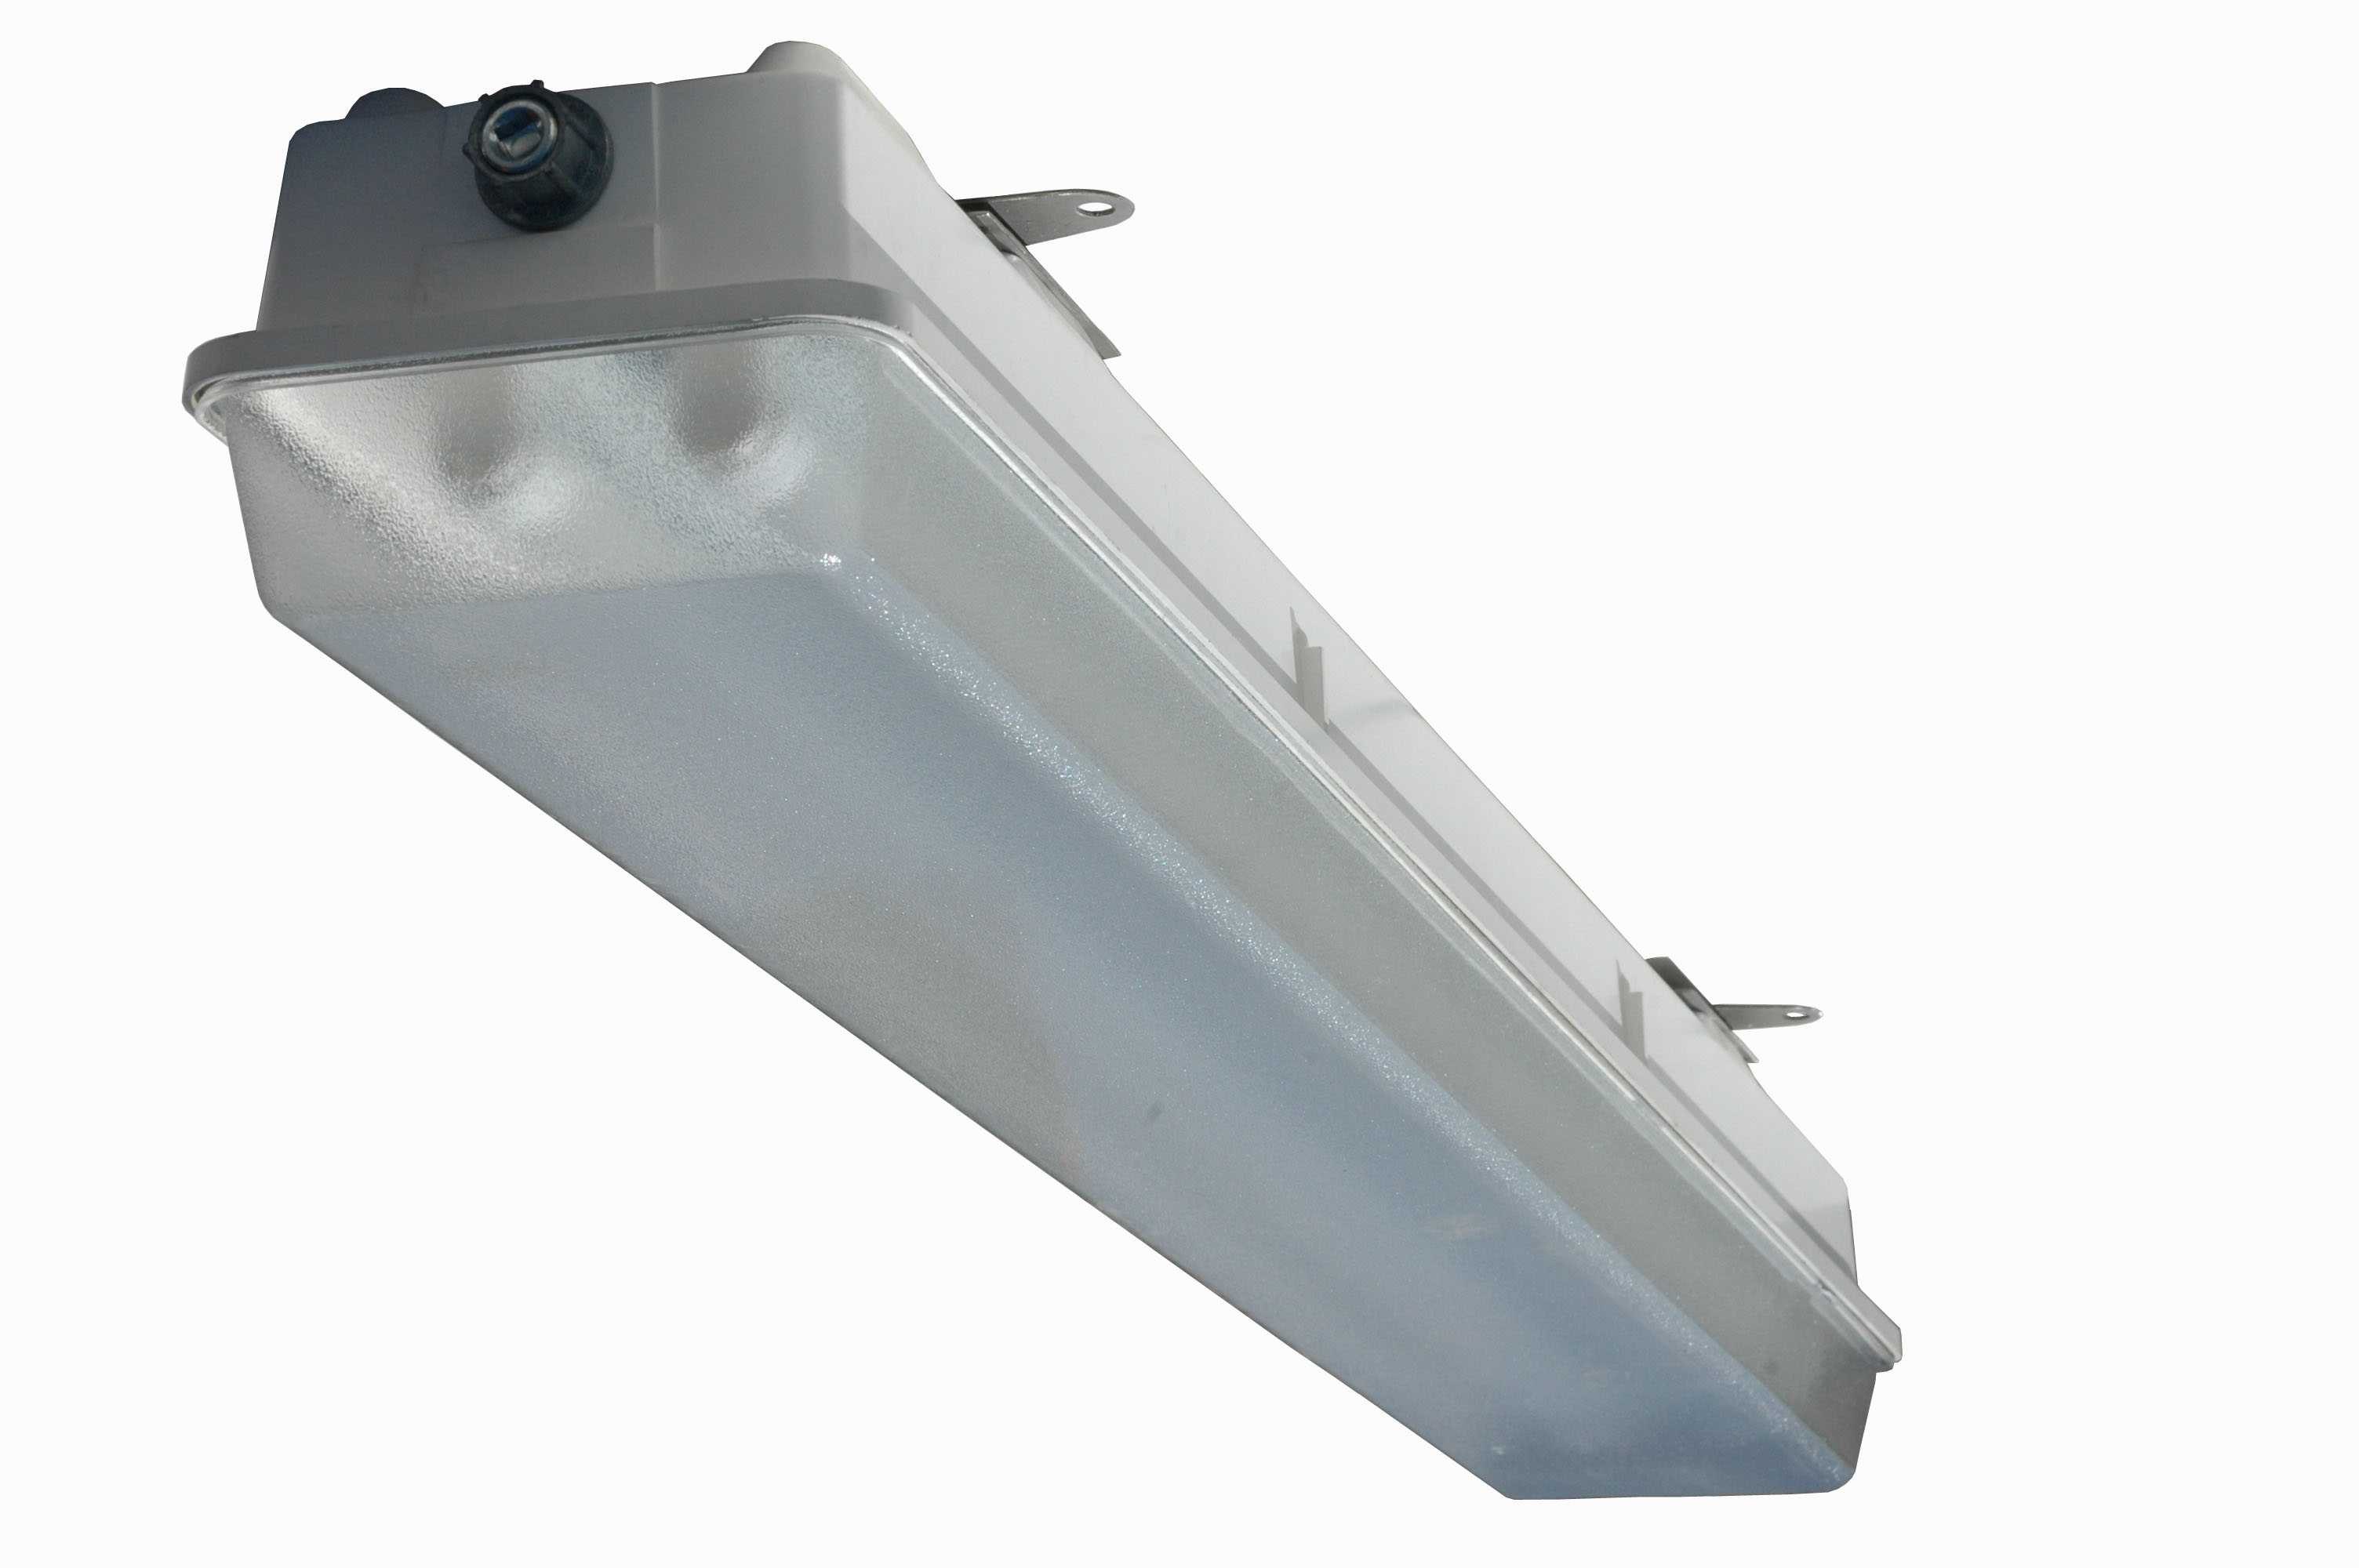 Class 1 Division 2 Emergency Led Light With Backuppower Outage Backup Operation Fixture Surface Mount Explosion Proof